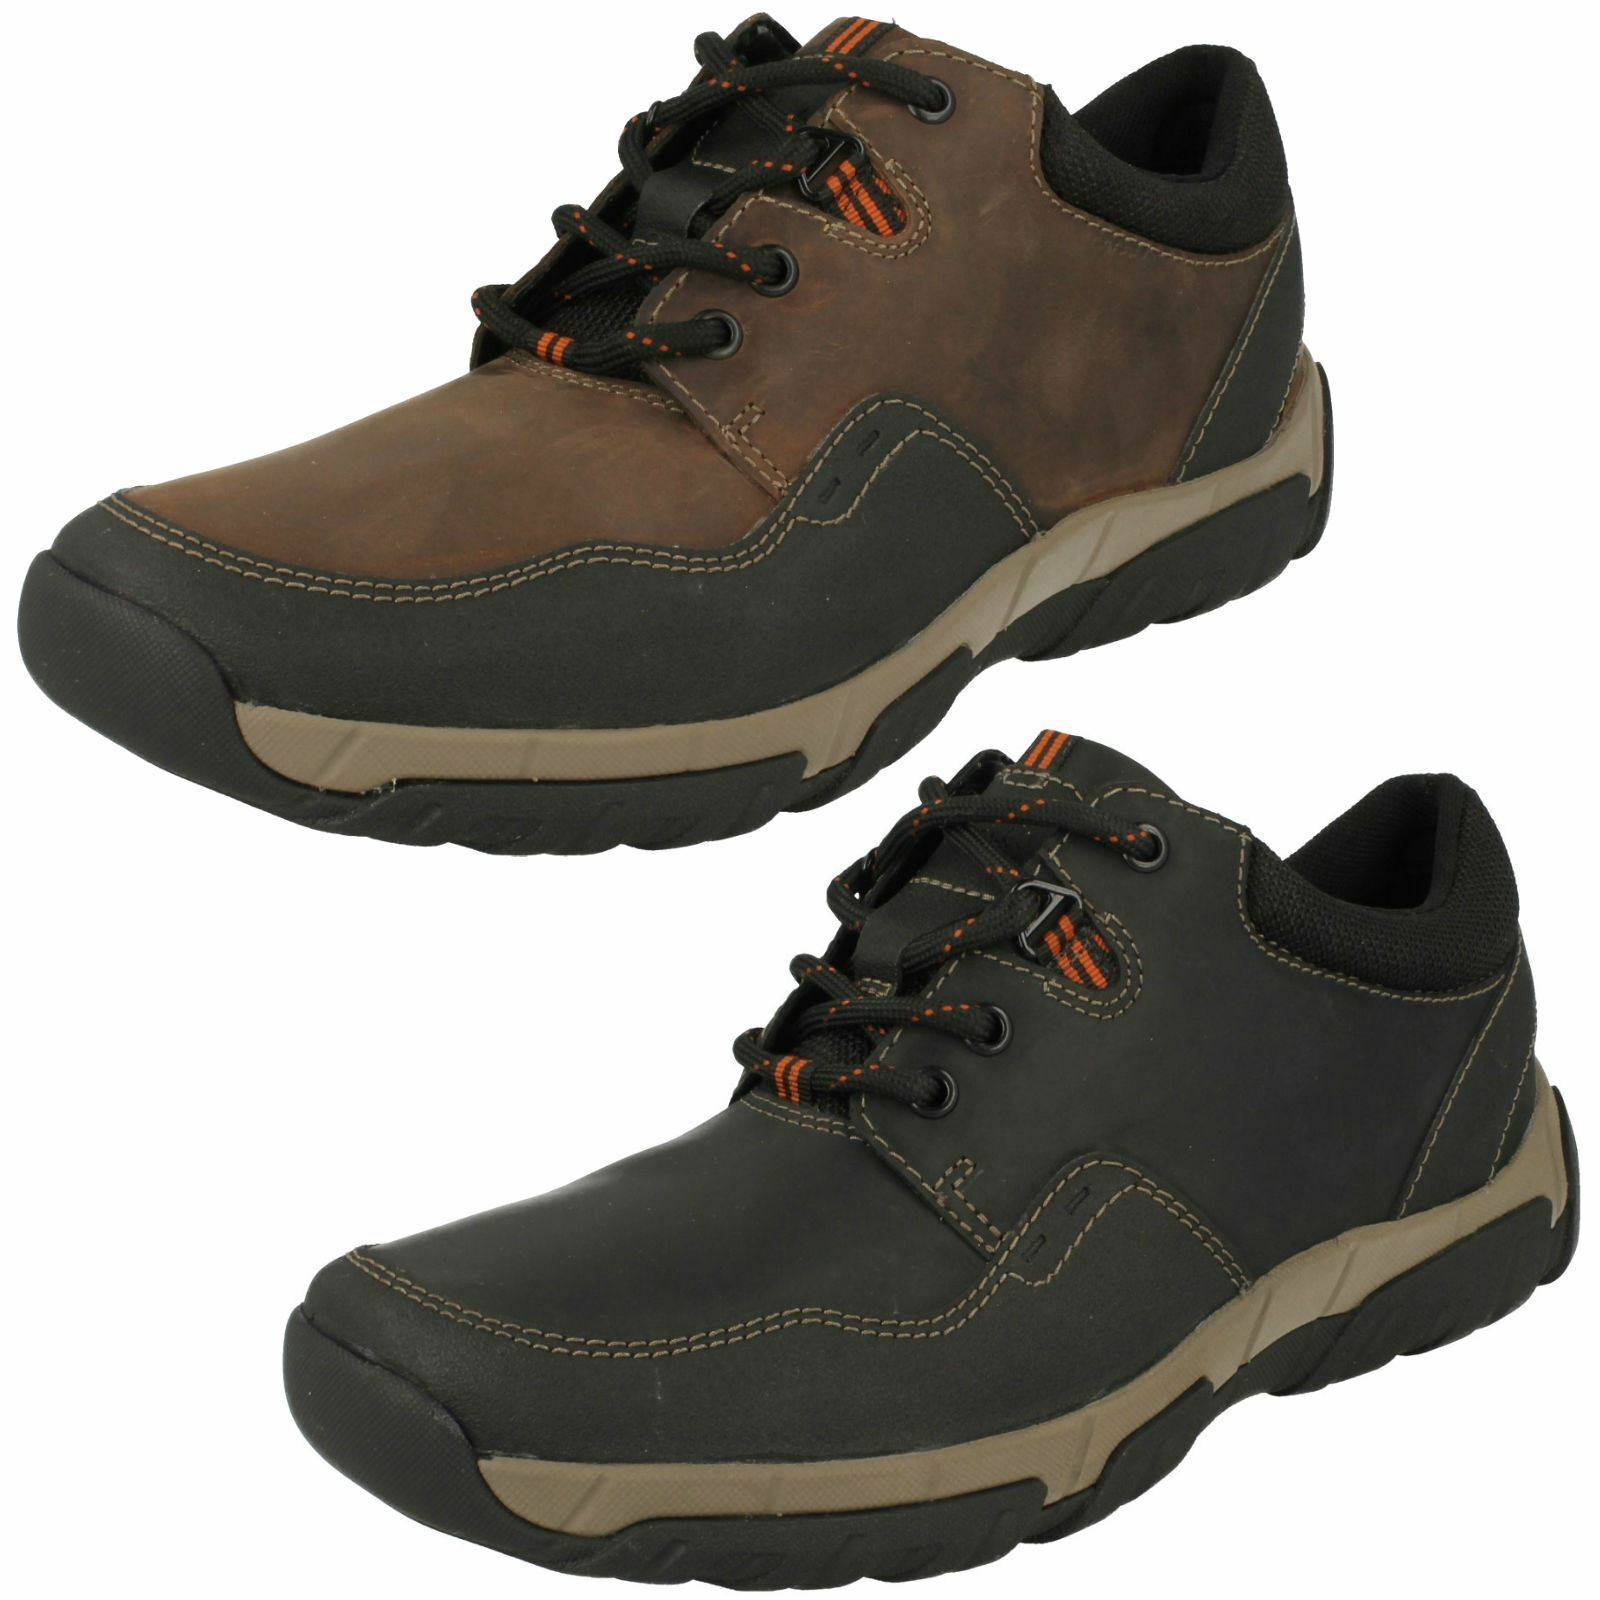 MENS CLARKS LEATHER BOOTS IN 2 COLOURS STYLE EDGE WALBECK EDGE STYLE 2436a6